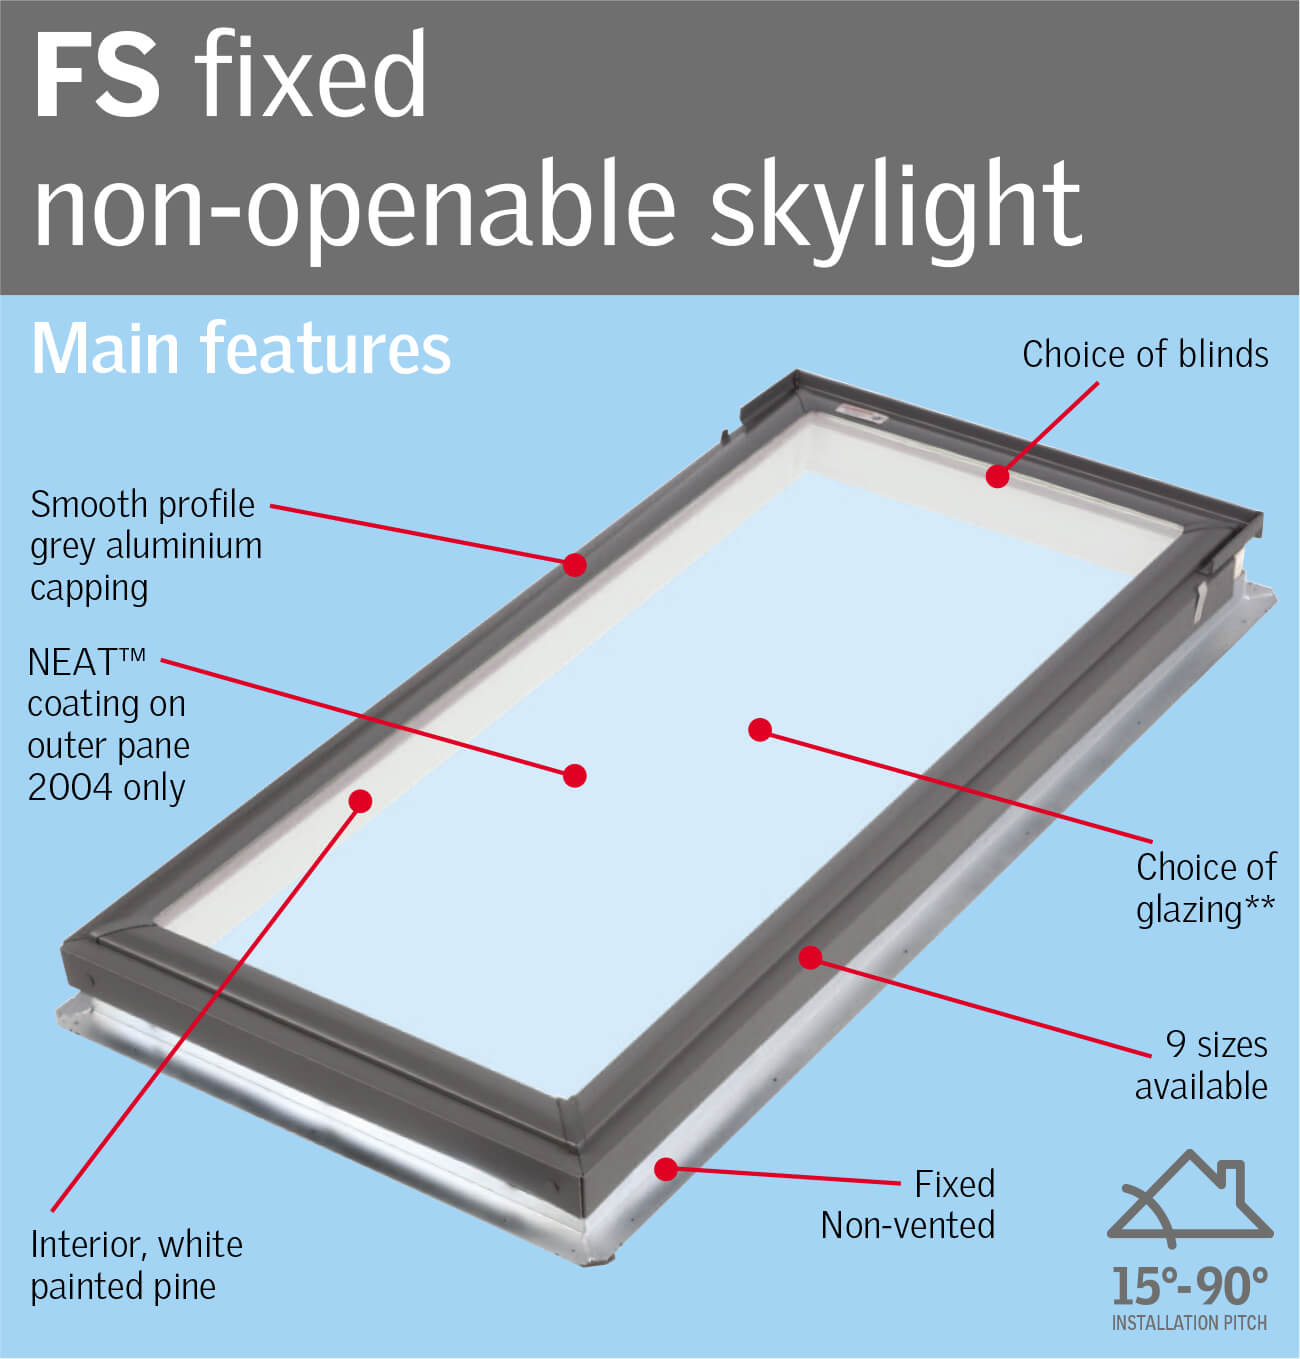 VELUX FS - fixed non openable skylight